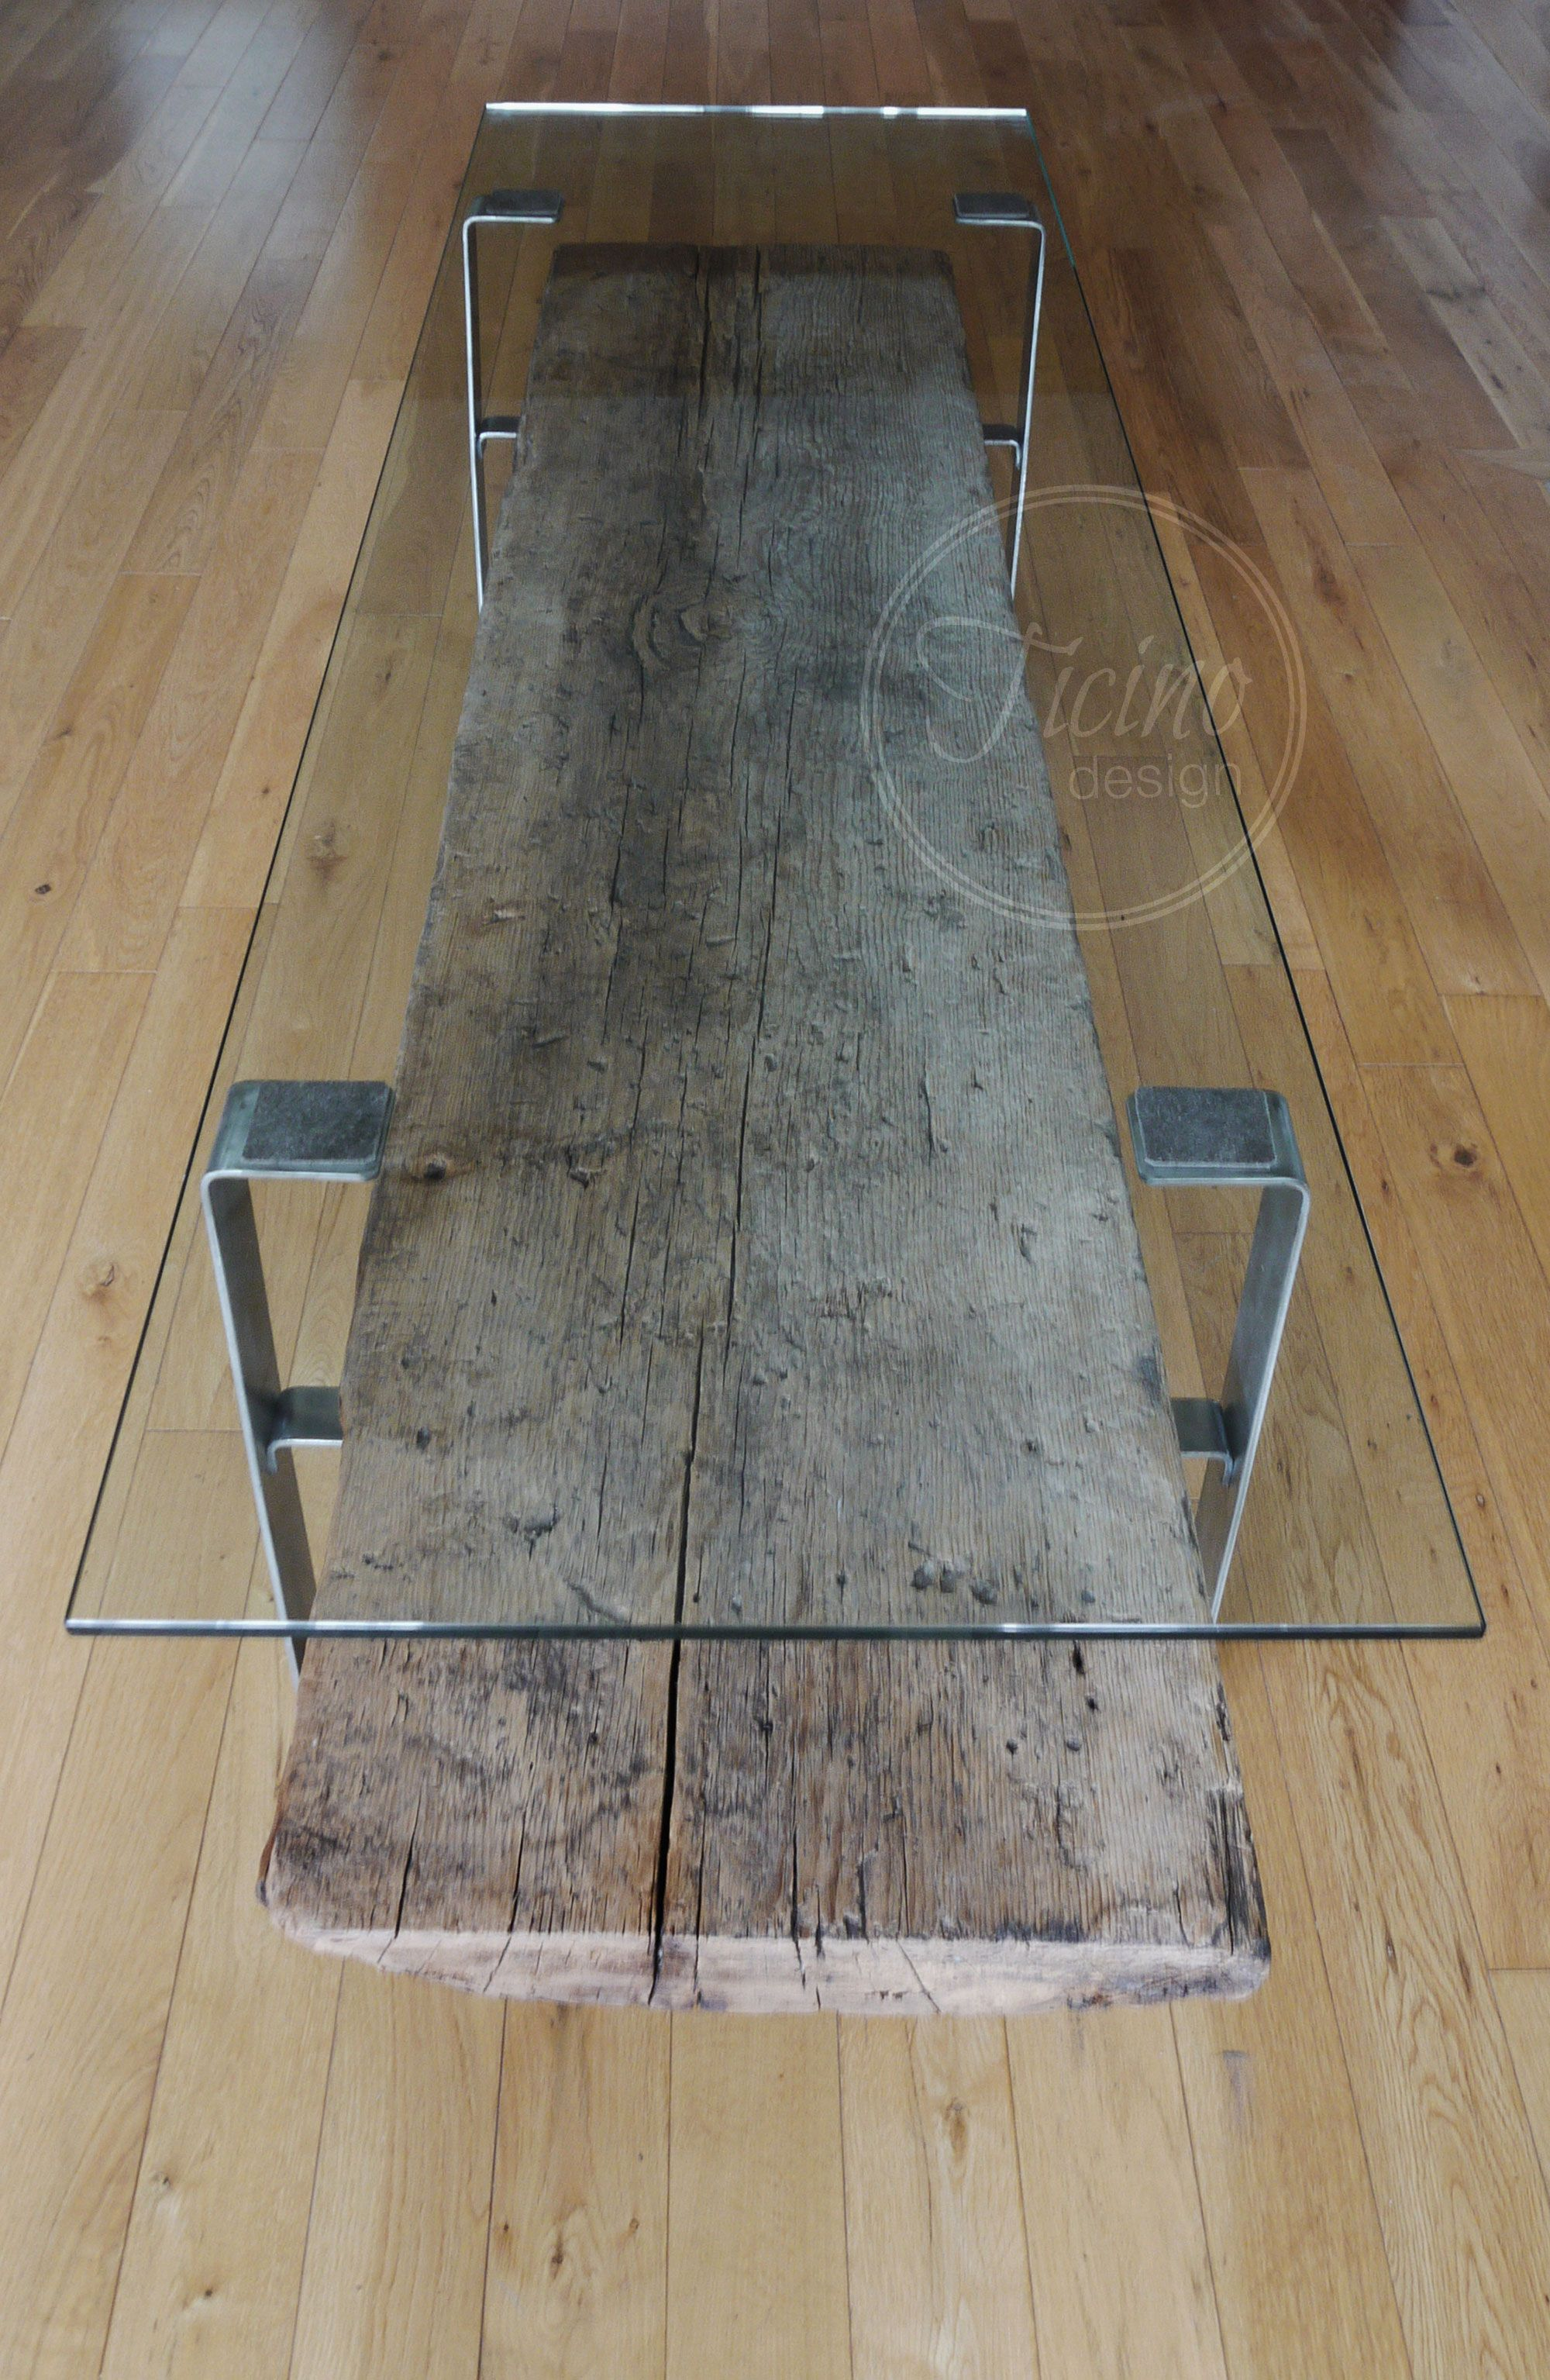 Industrial Style Coffee Table Metal Coffee Table Rustic Coffee Table Reclaimed W Coffee Table Wood Reclaimed Wood Coffee Table Industrial Style Coffee Table [ 3070 x 2000 Pixel ]